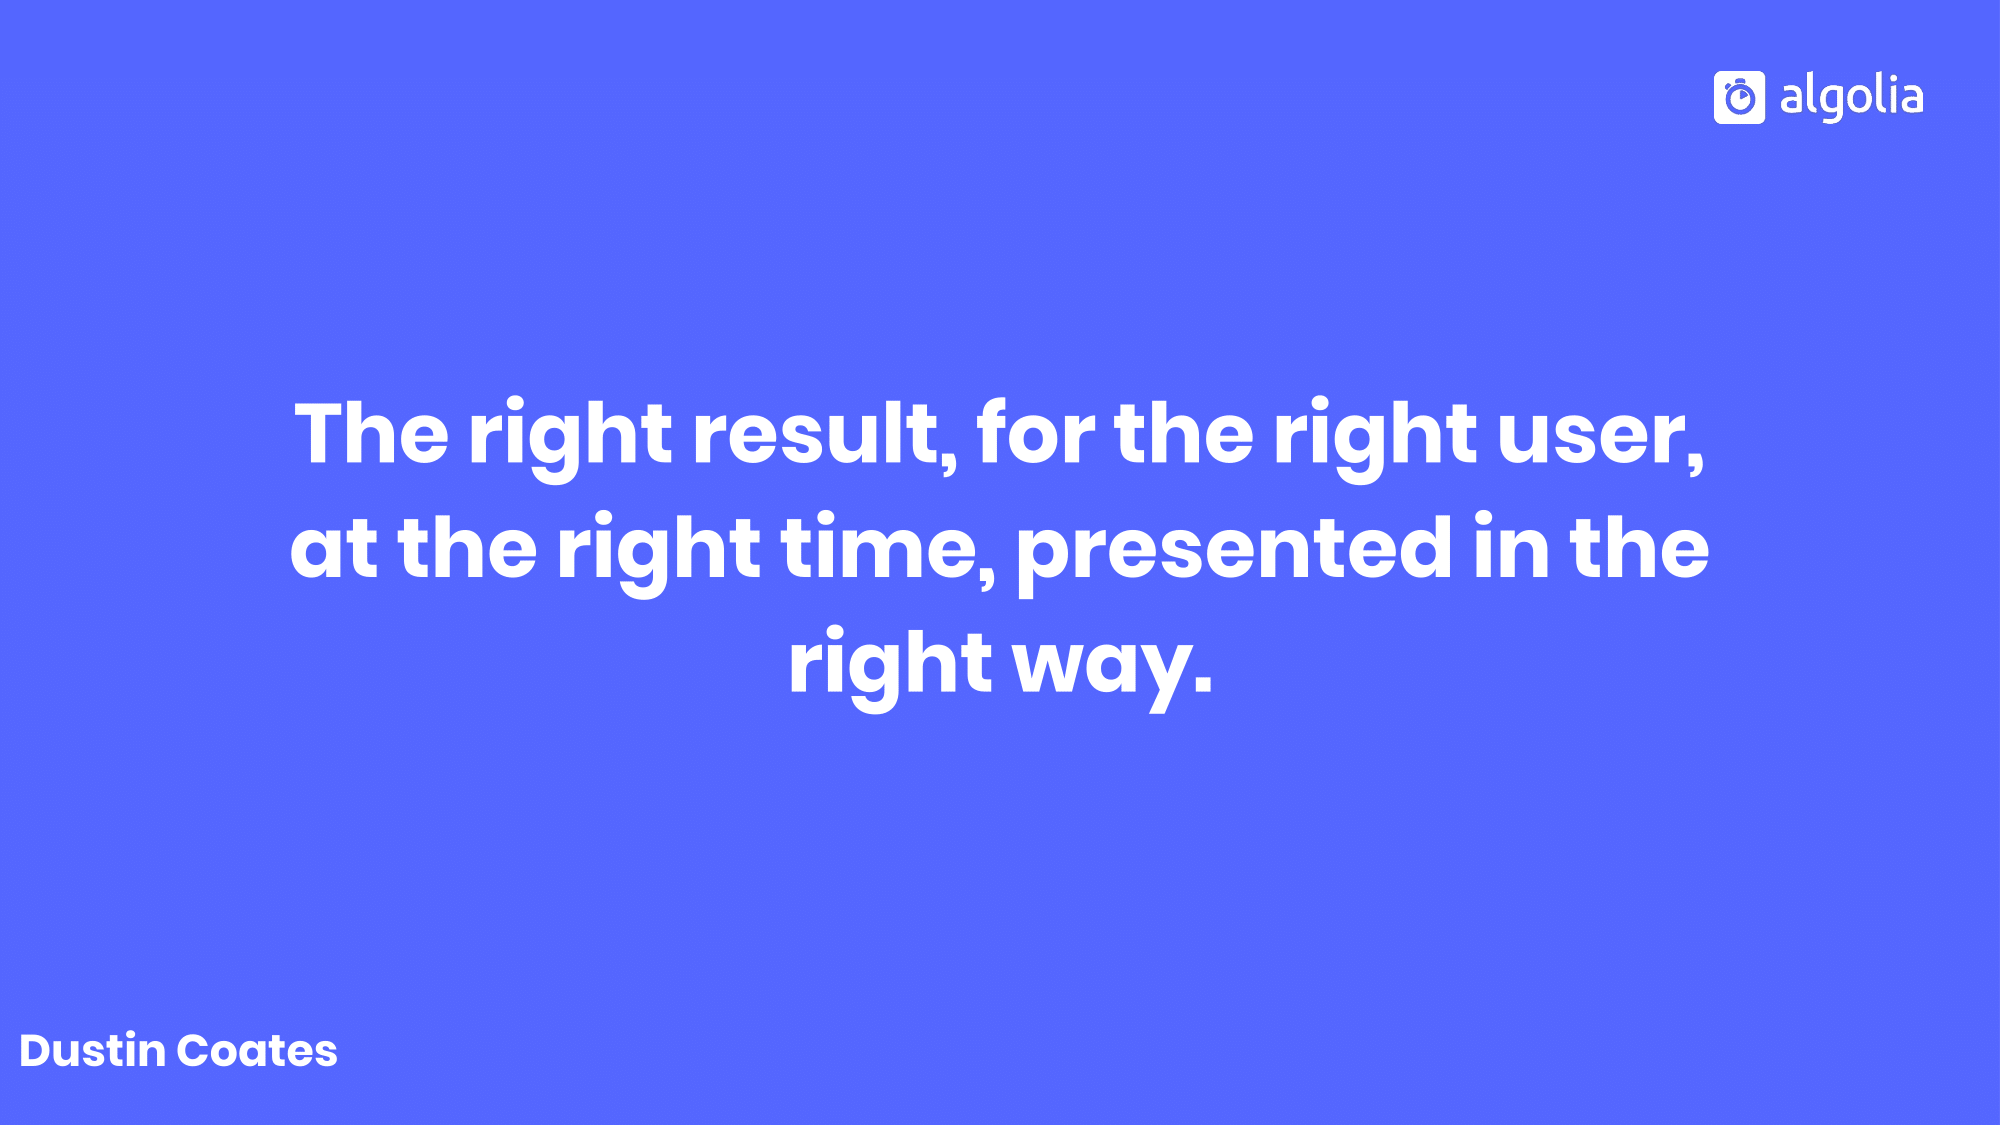 The right result for the right user at the right time, presented in the right way